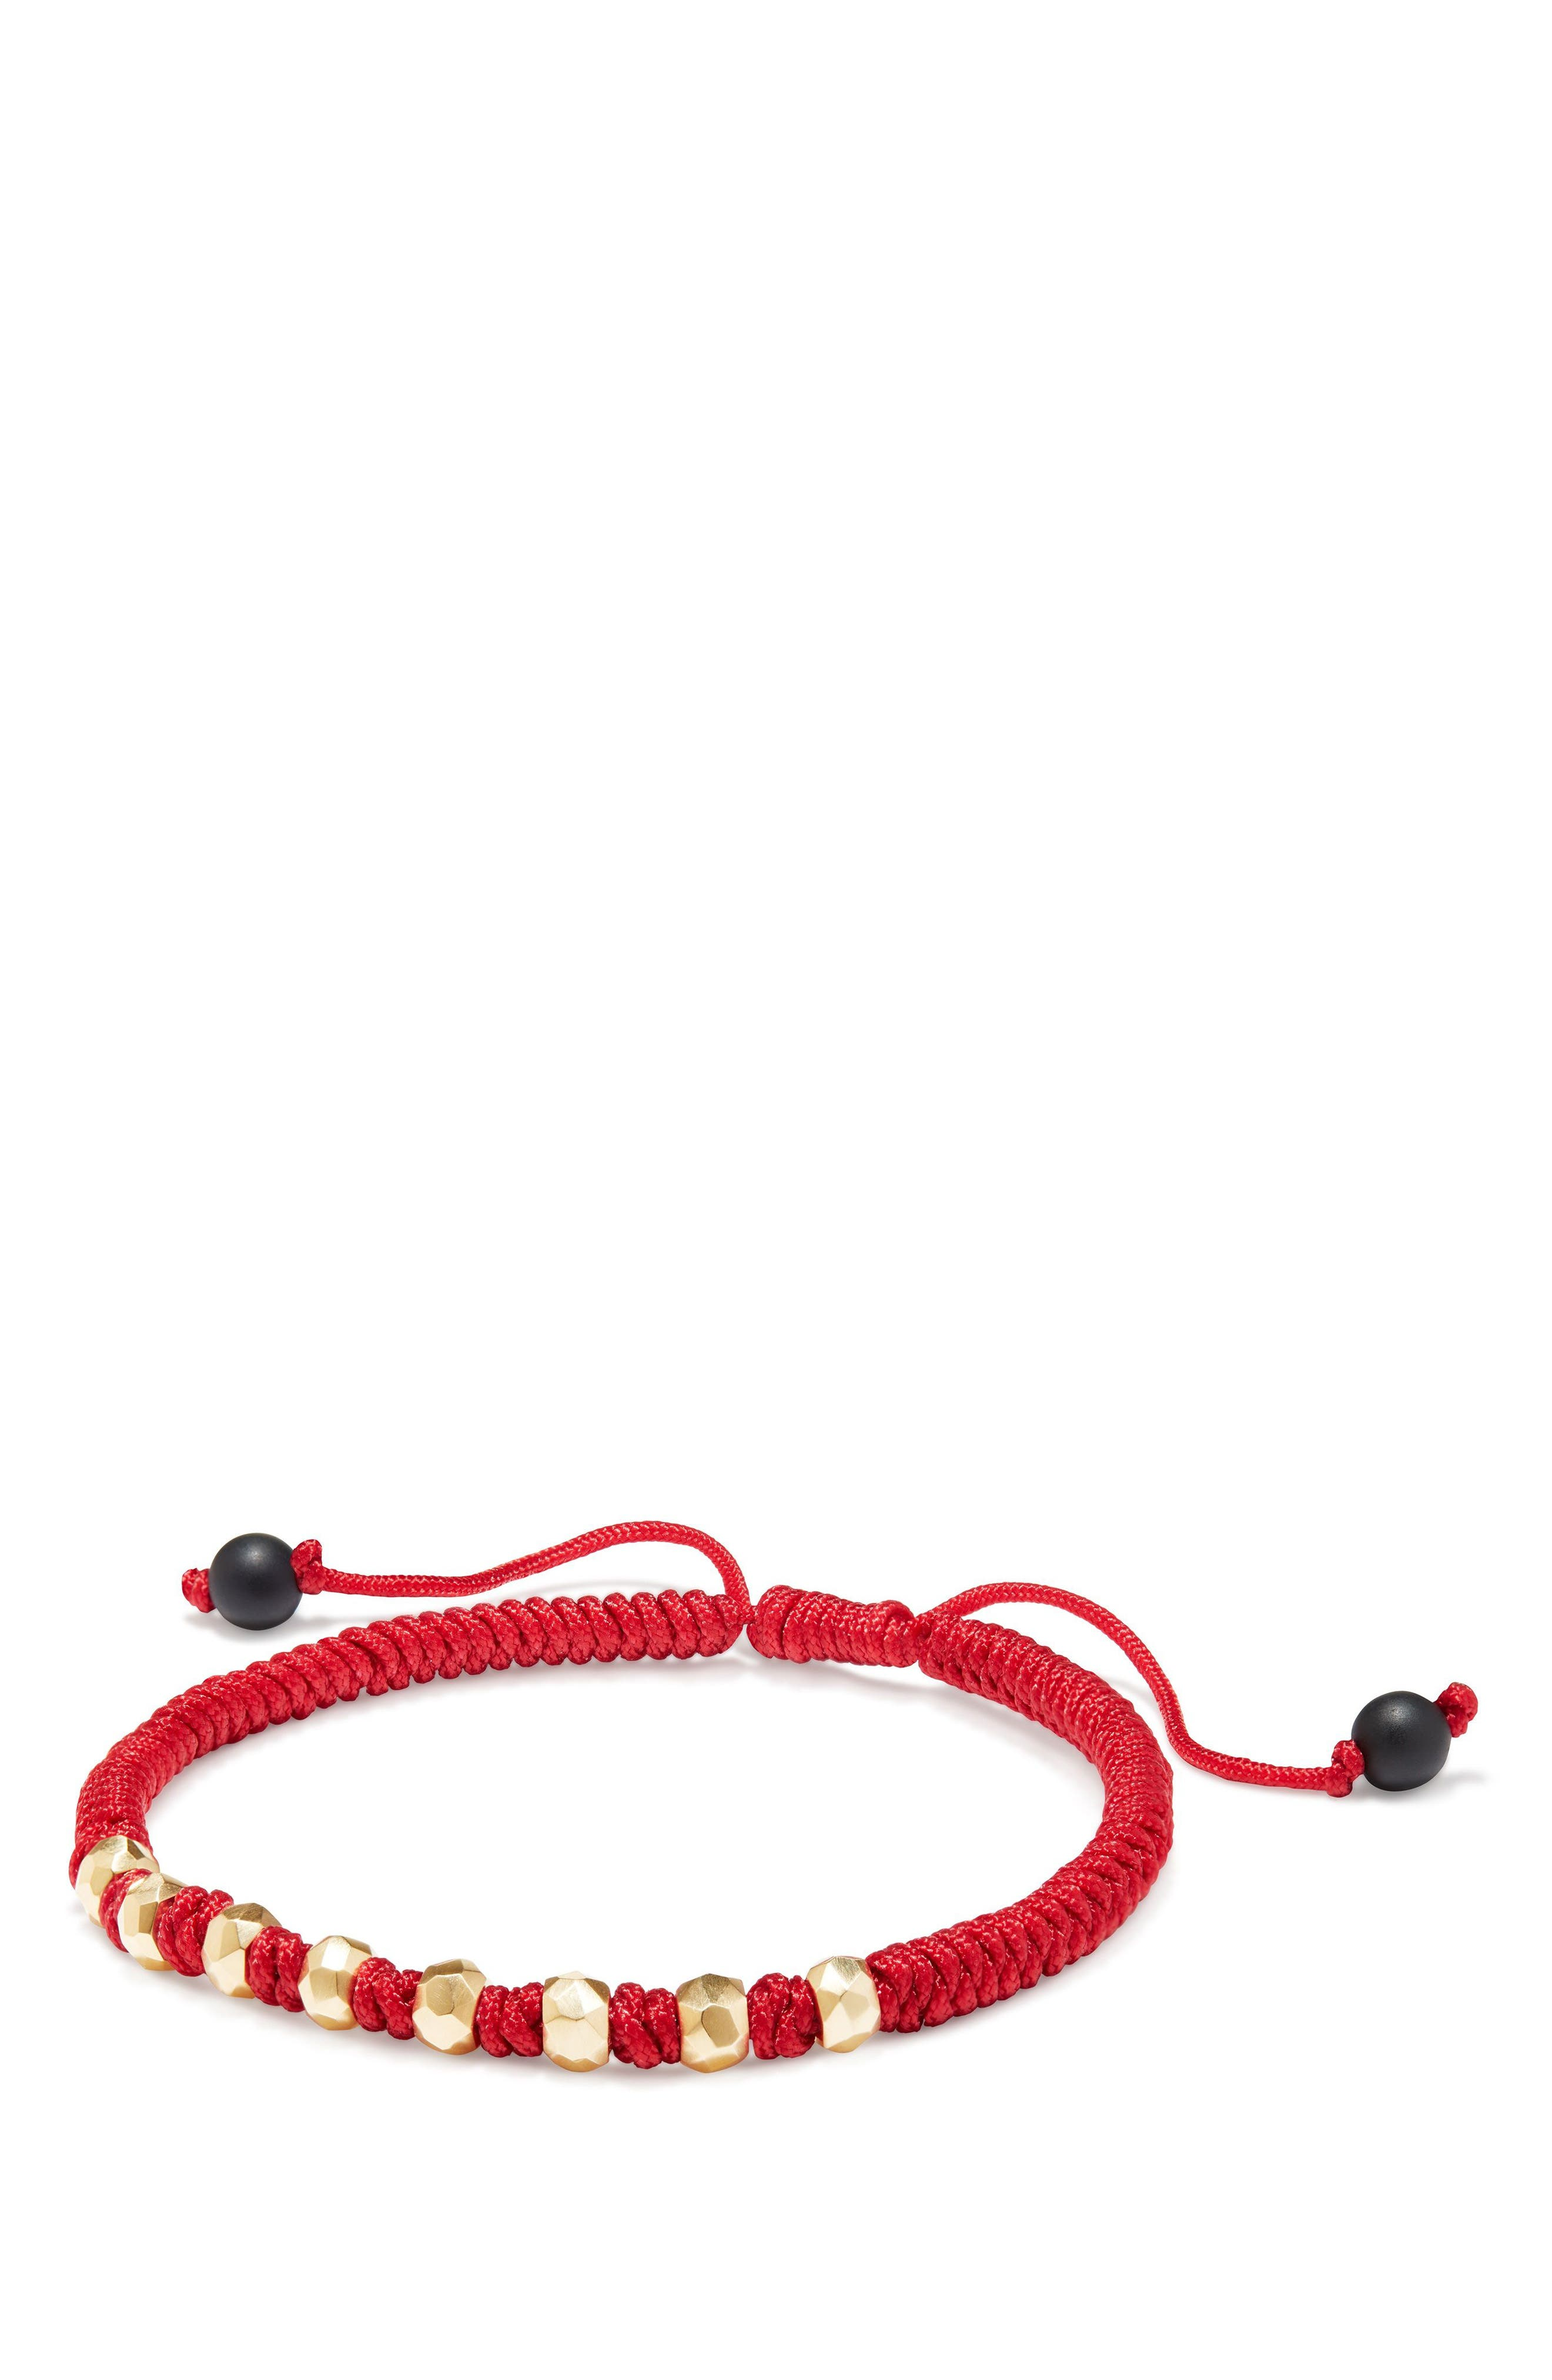 DY Fortune Woven Bracelet with Black Onyx in 18K Gold,                         Main,                         color, Red